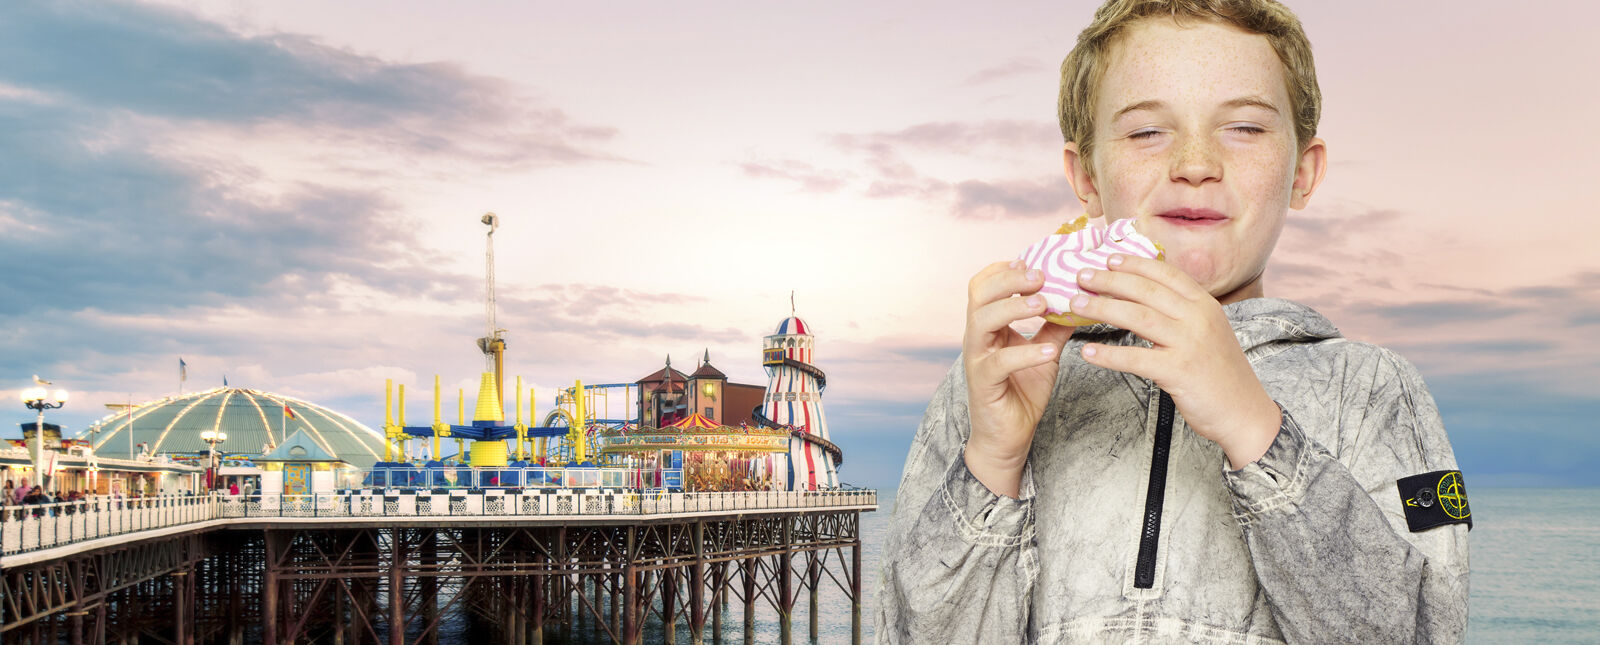 View of a pier amusement park and a waterfront promenade on the left and a close up shot of a junior model eating a donut, wearing an off white dust effect hooded jacket with half zipper and the Stone Island badge on the upper left arm.